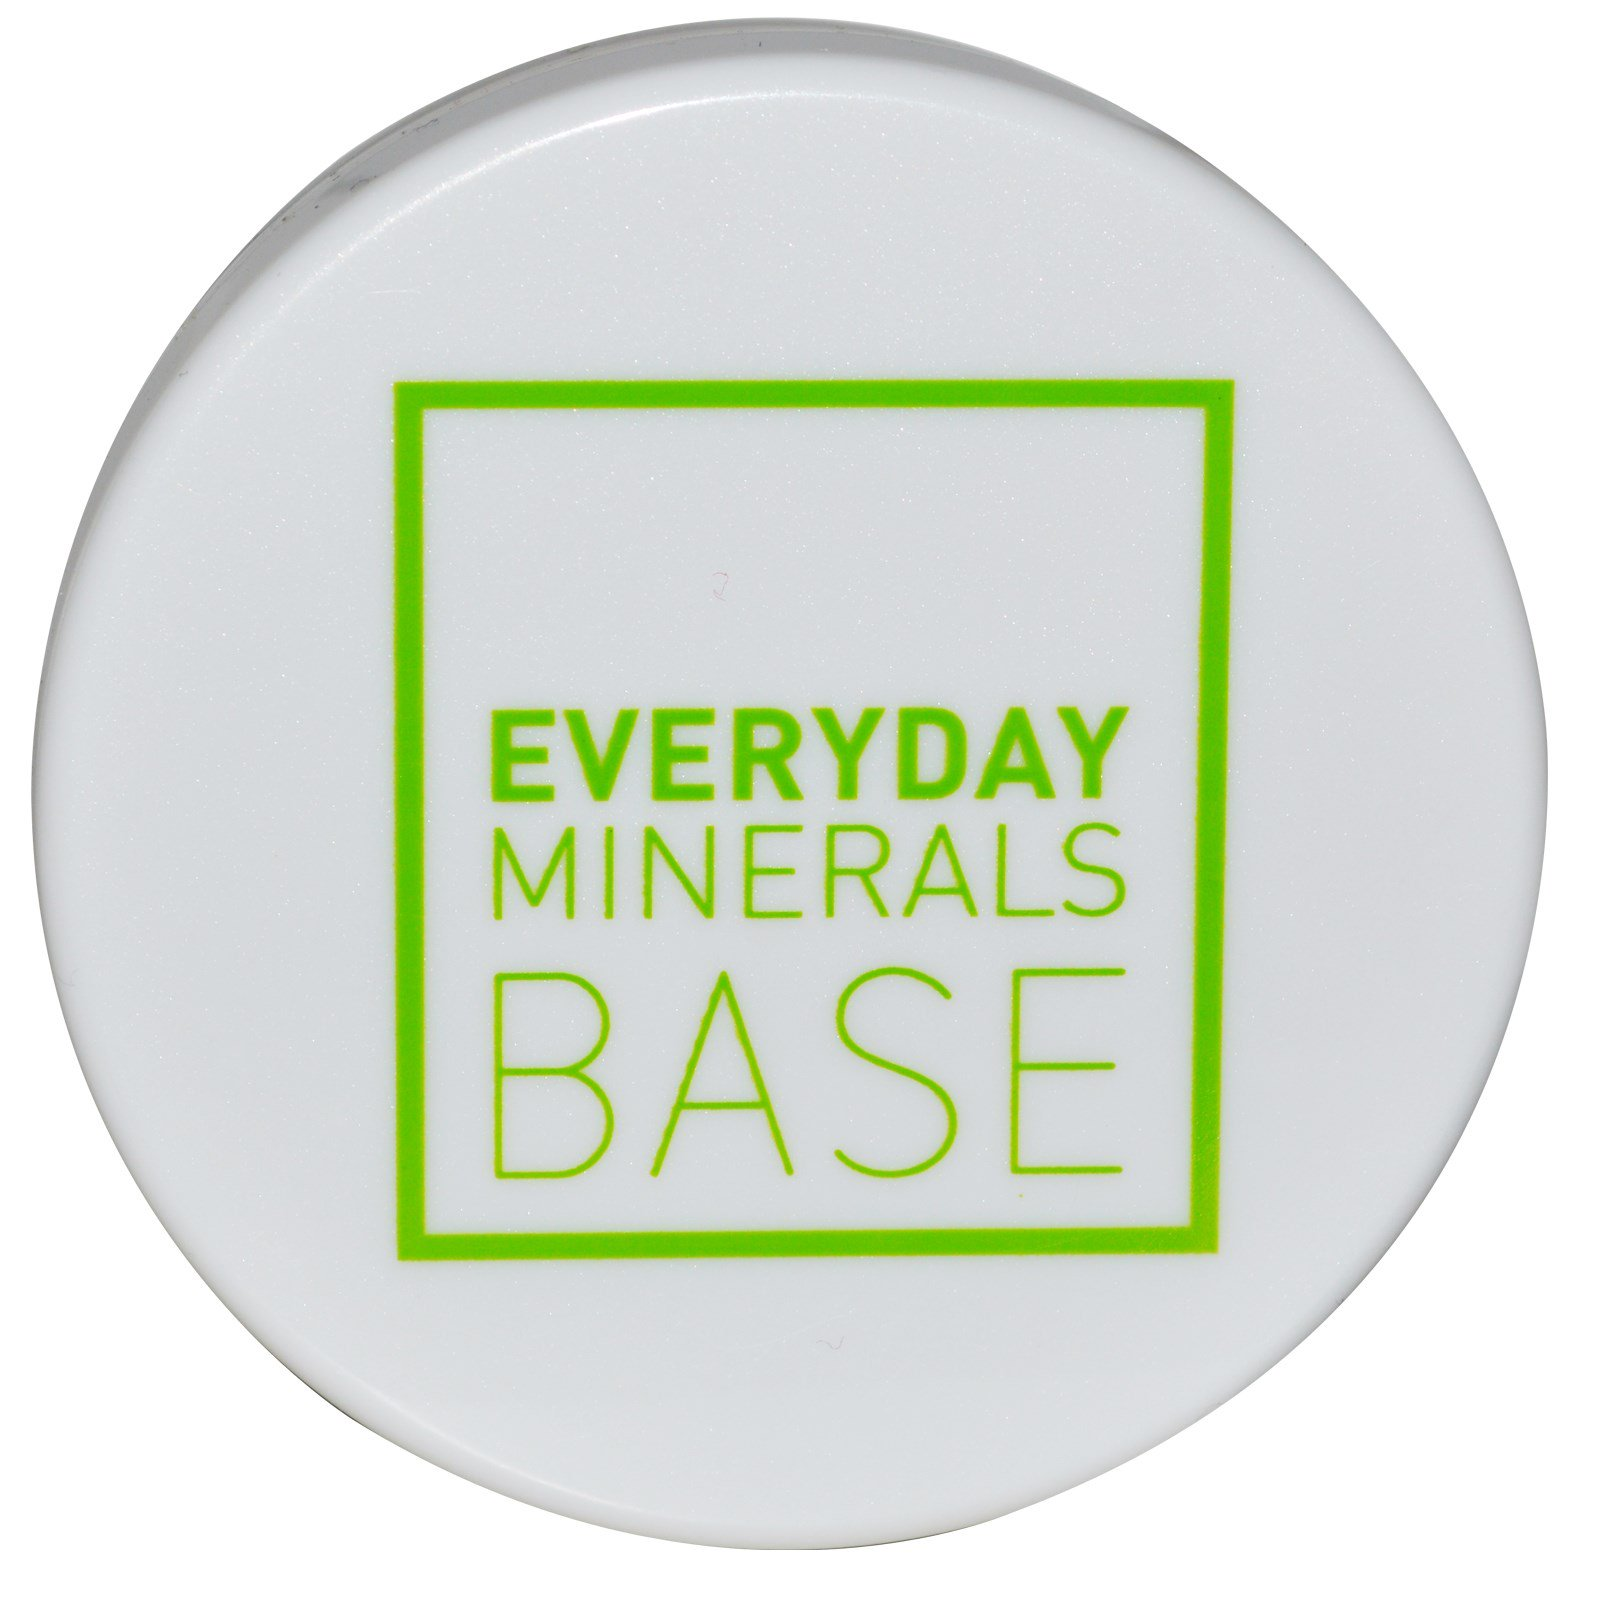 Everyday minerals BASE